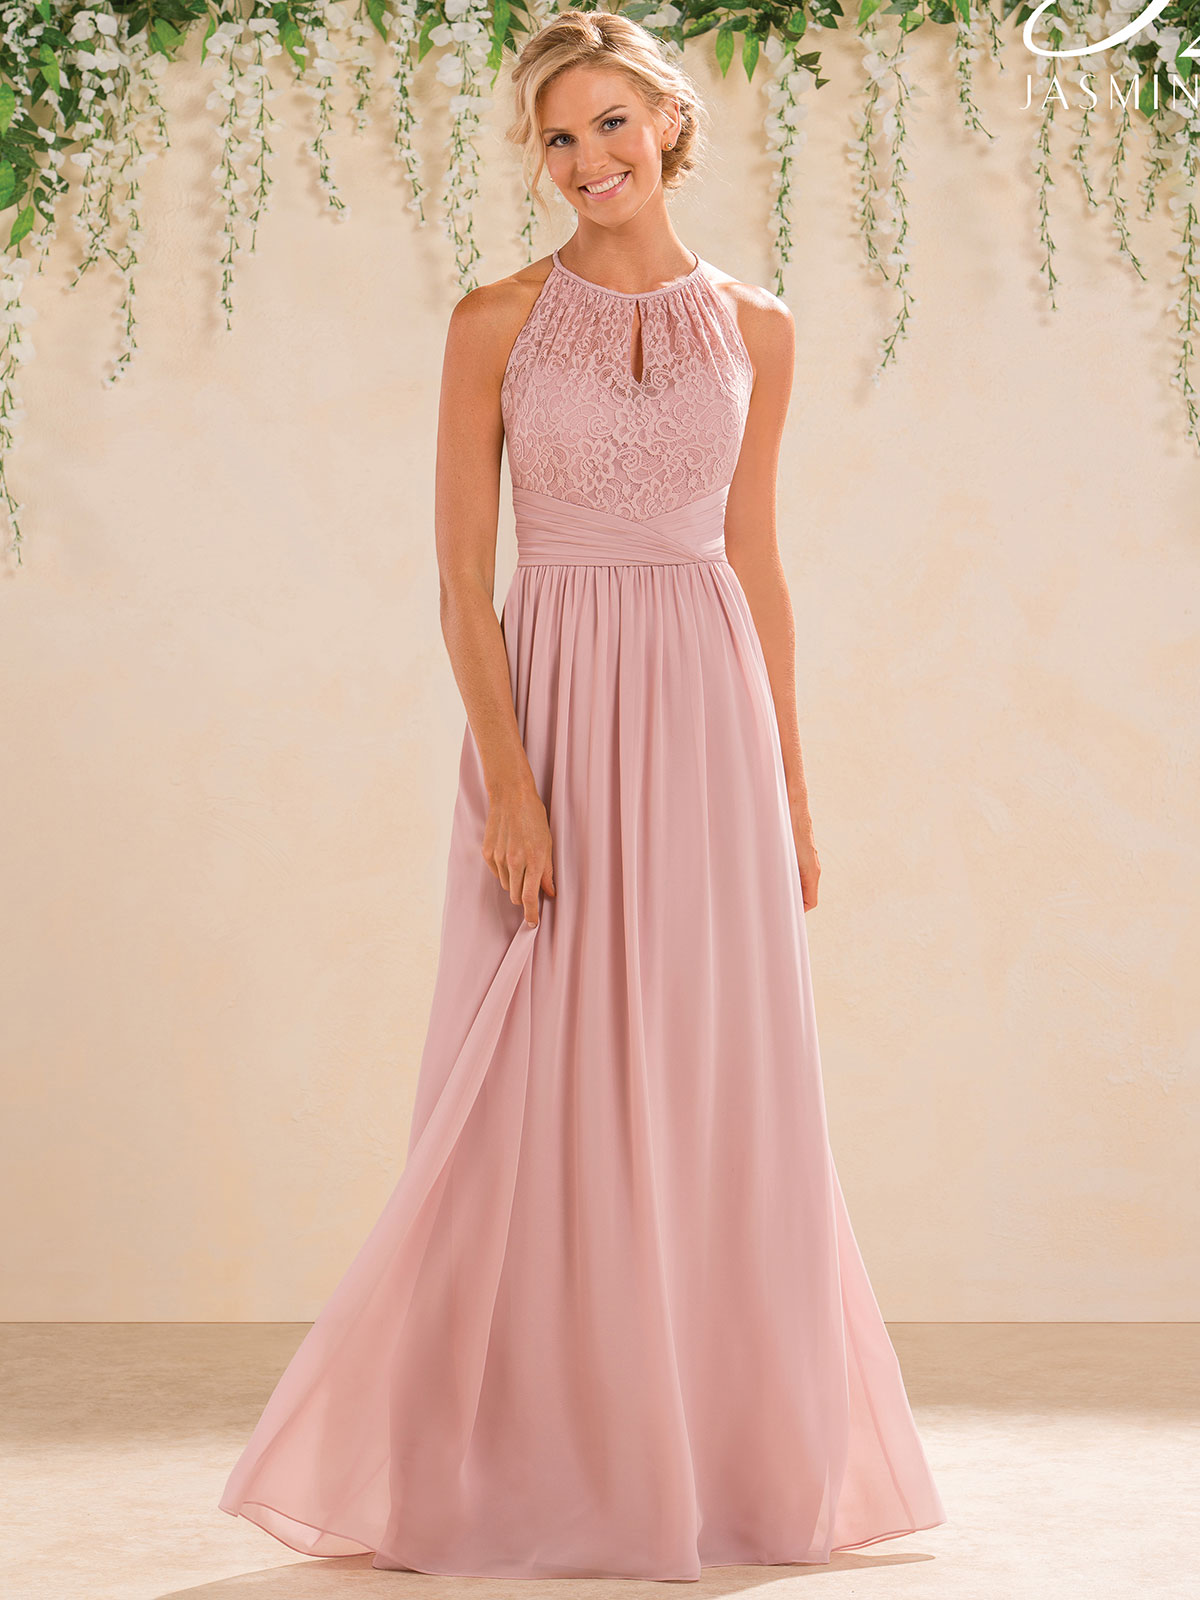 High Neckline Bridesmaid Dresses